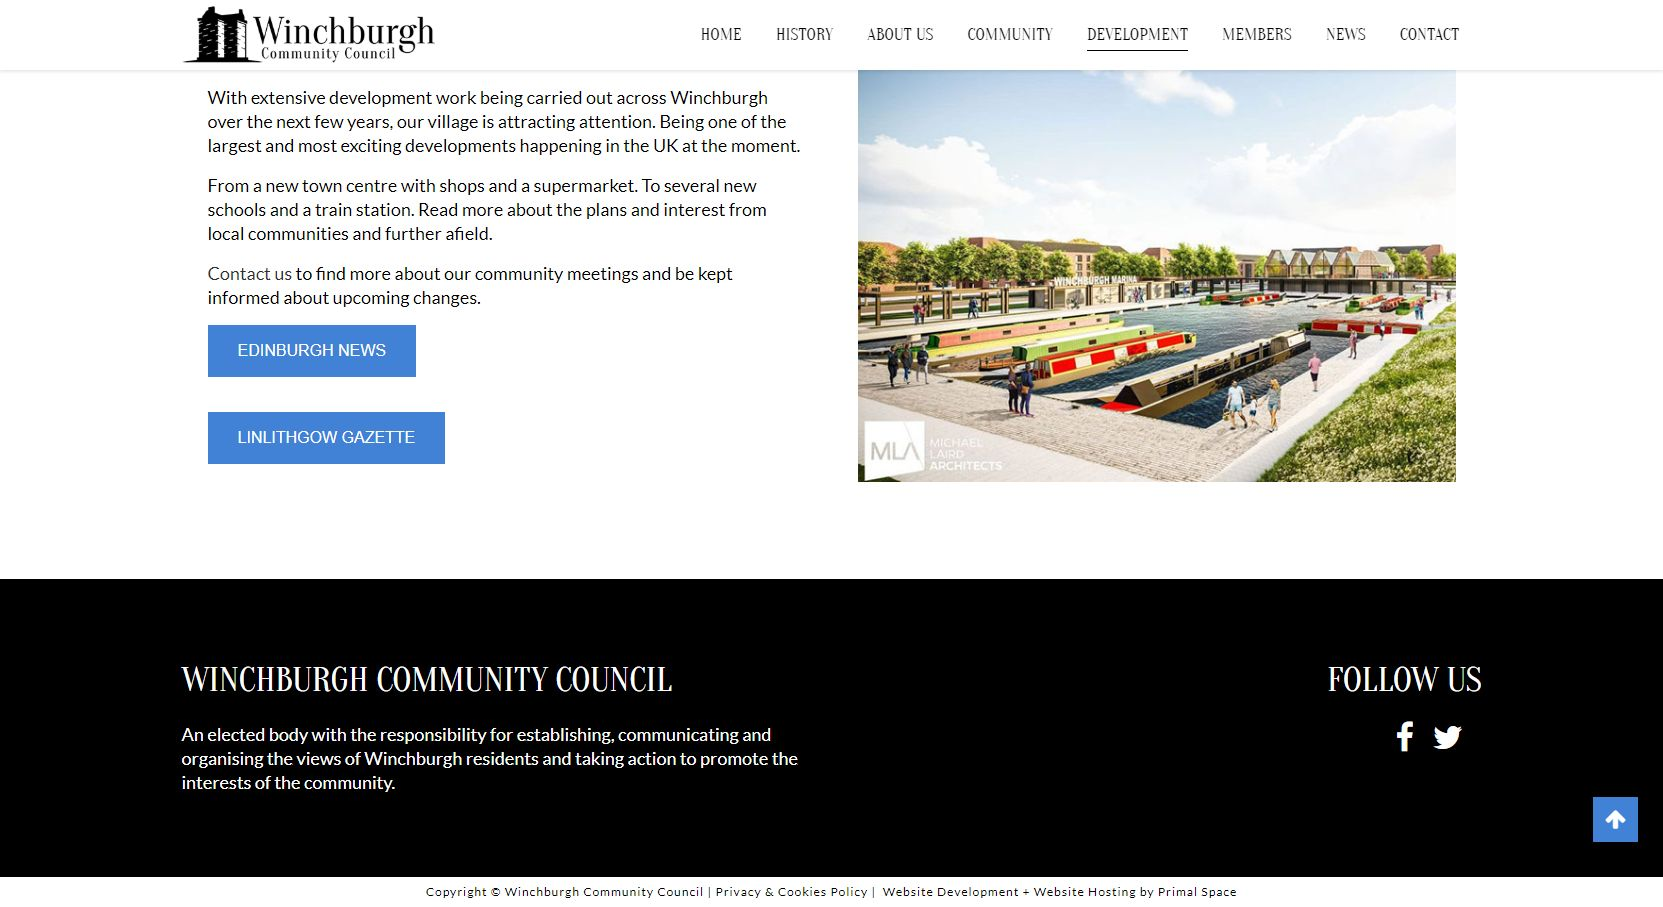 Winchburgh Community Council Development Footer